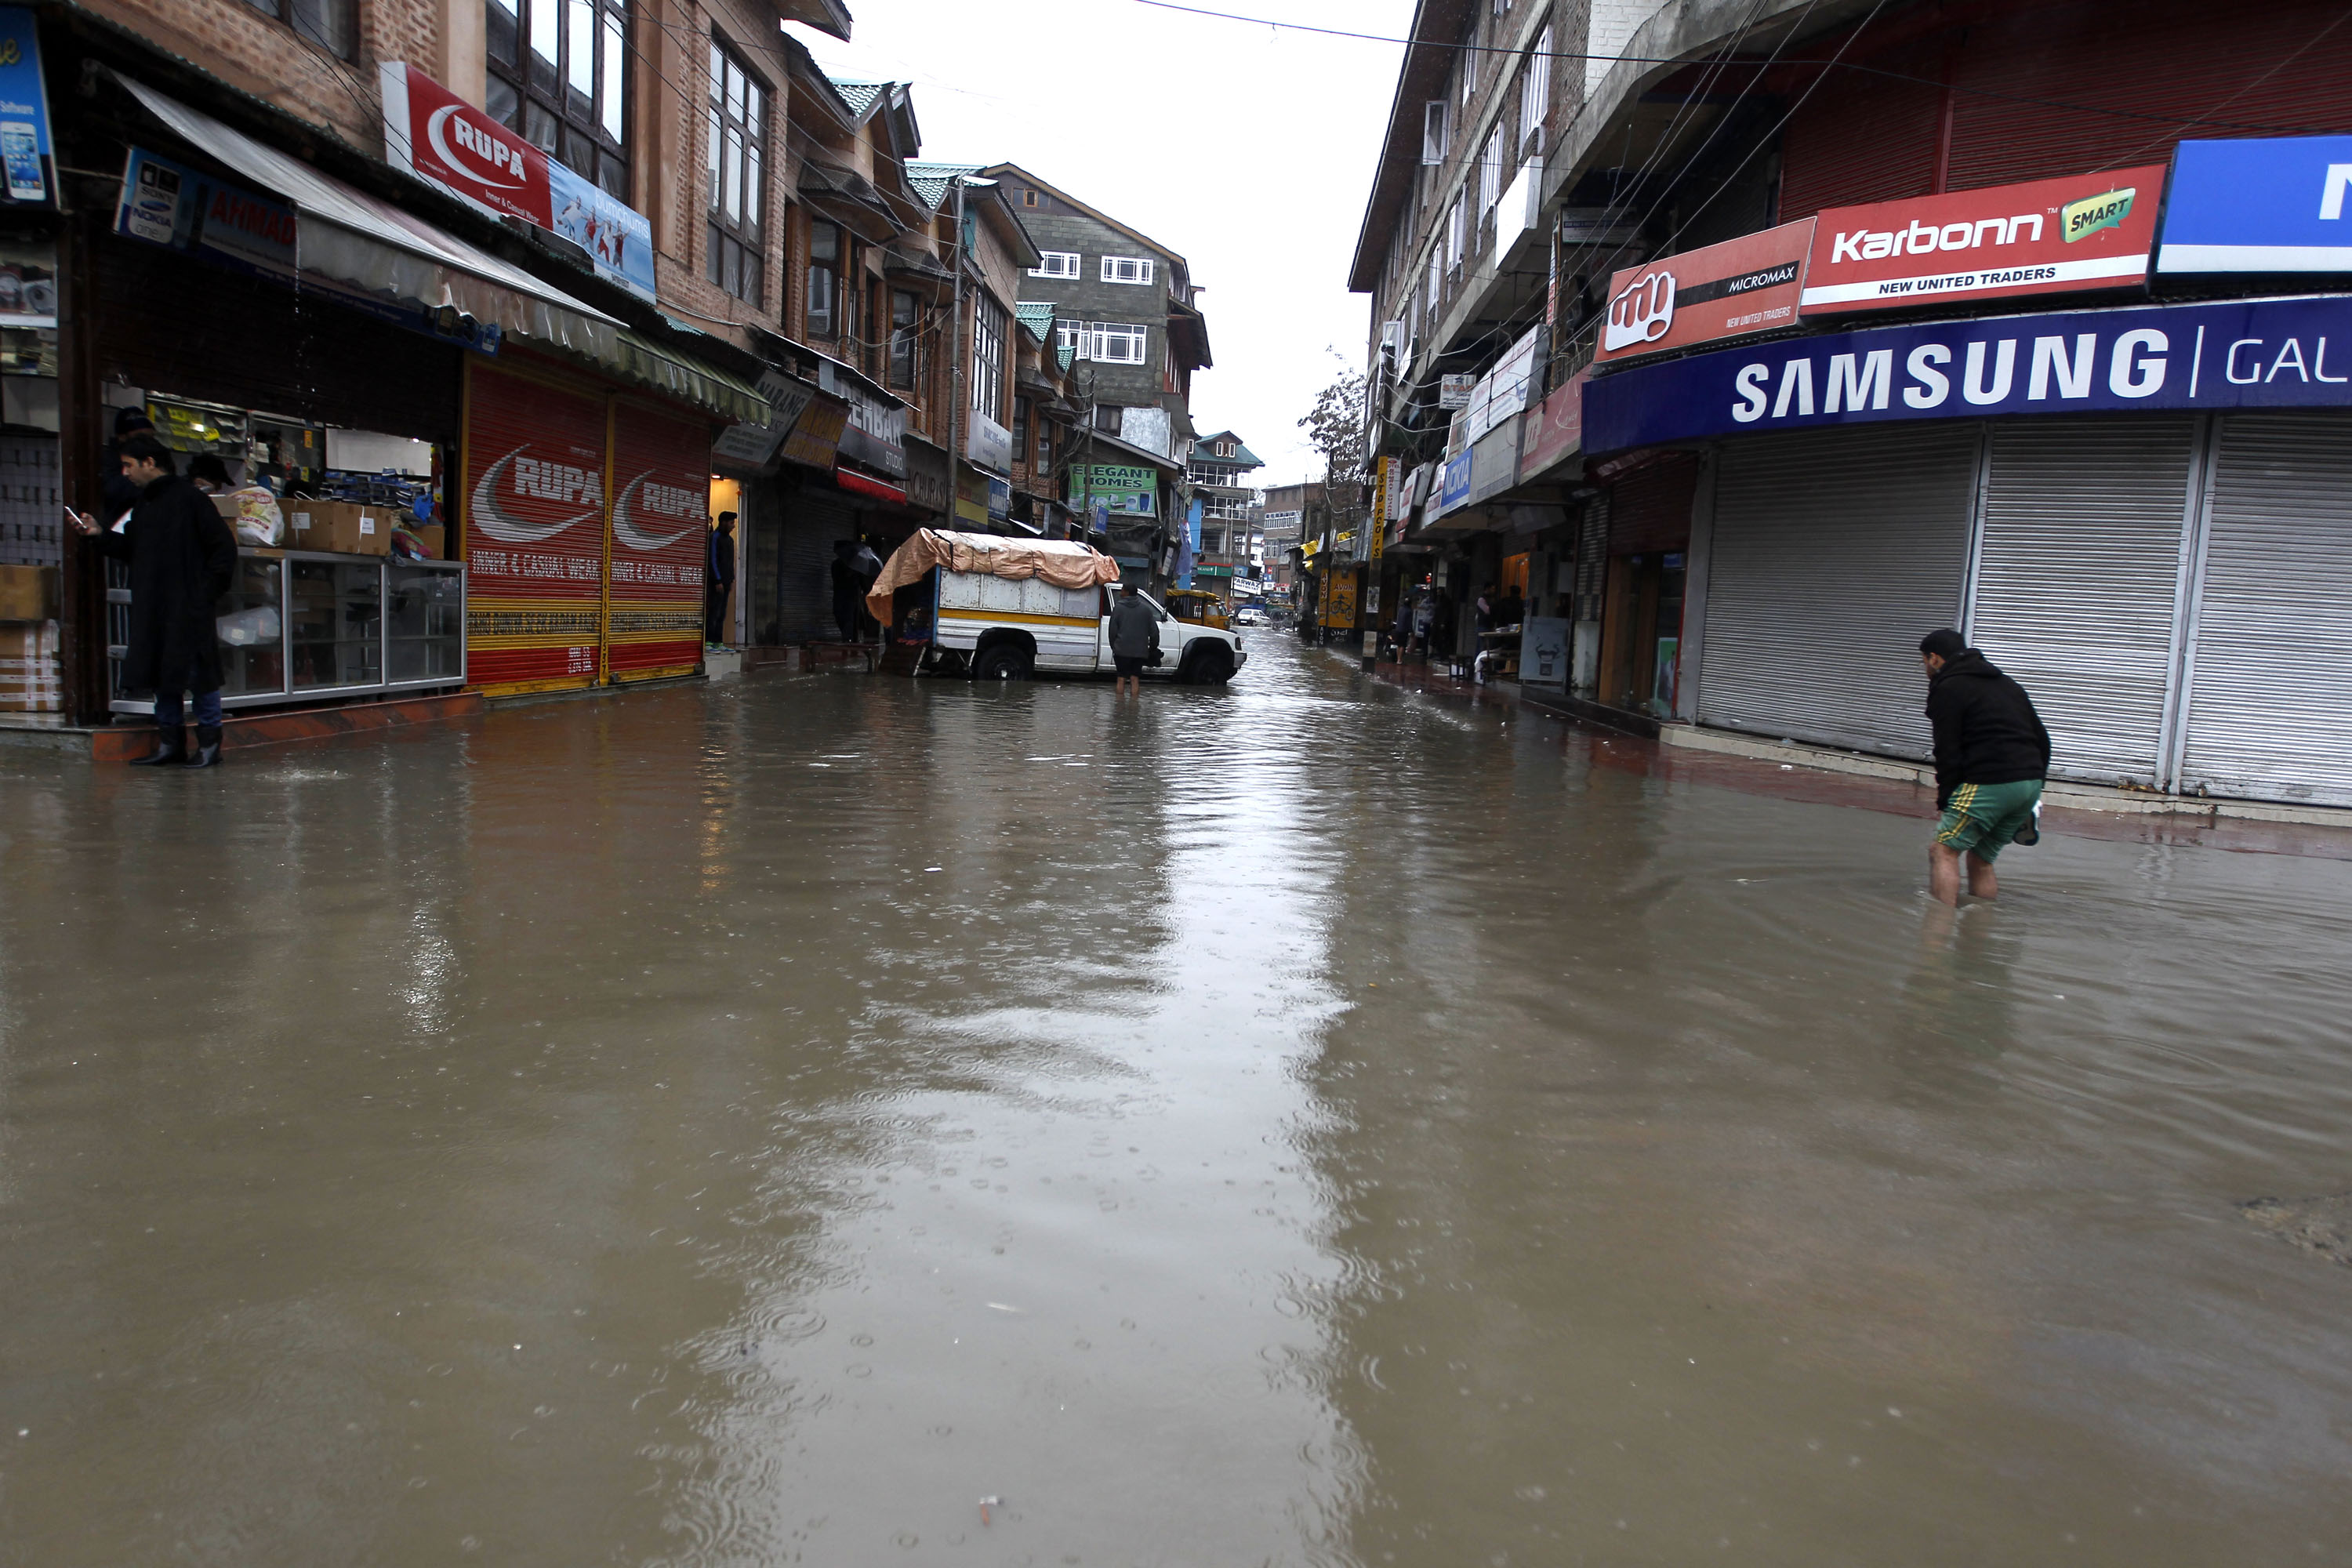 If the Jhelum spills, Srinagar is first in line to flood. [Al Jazeera]